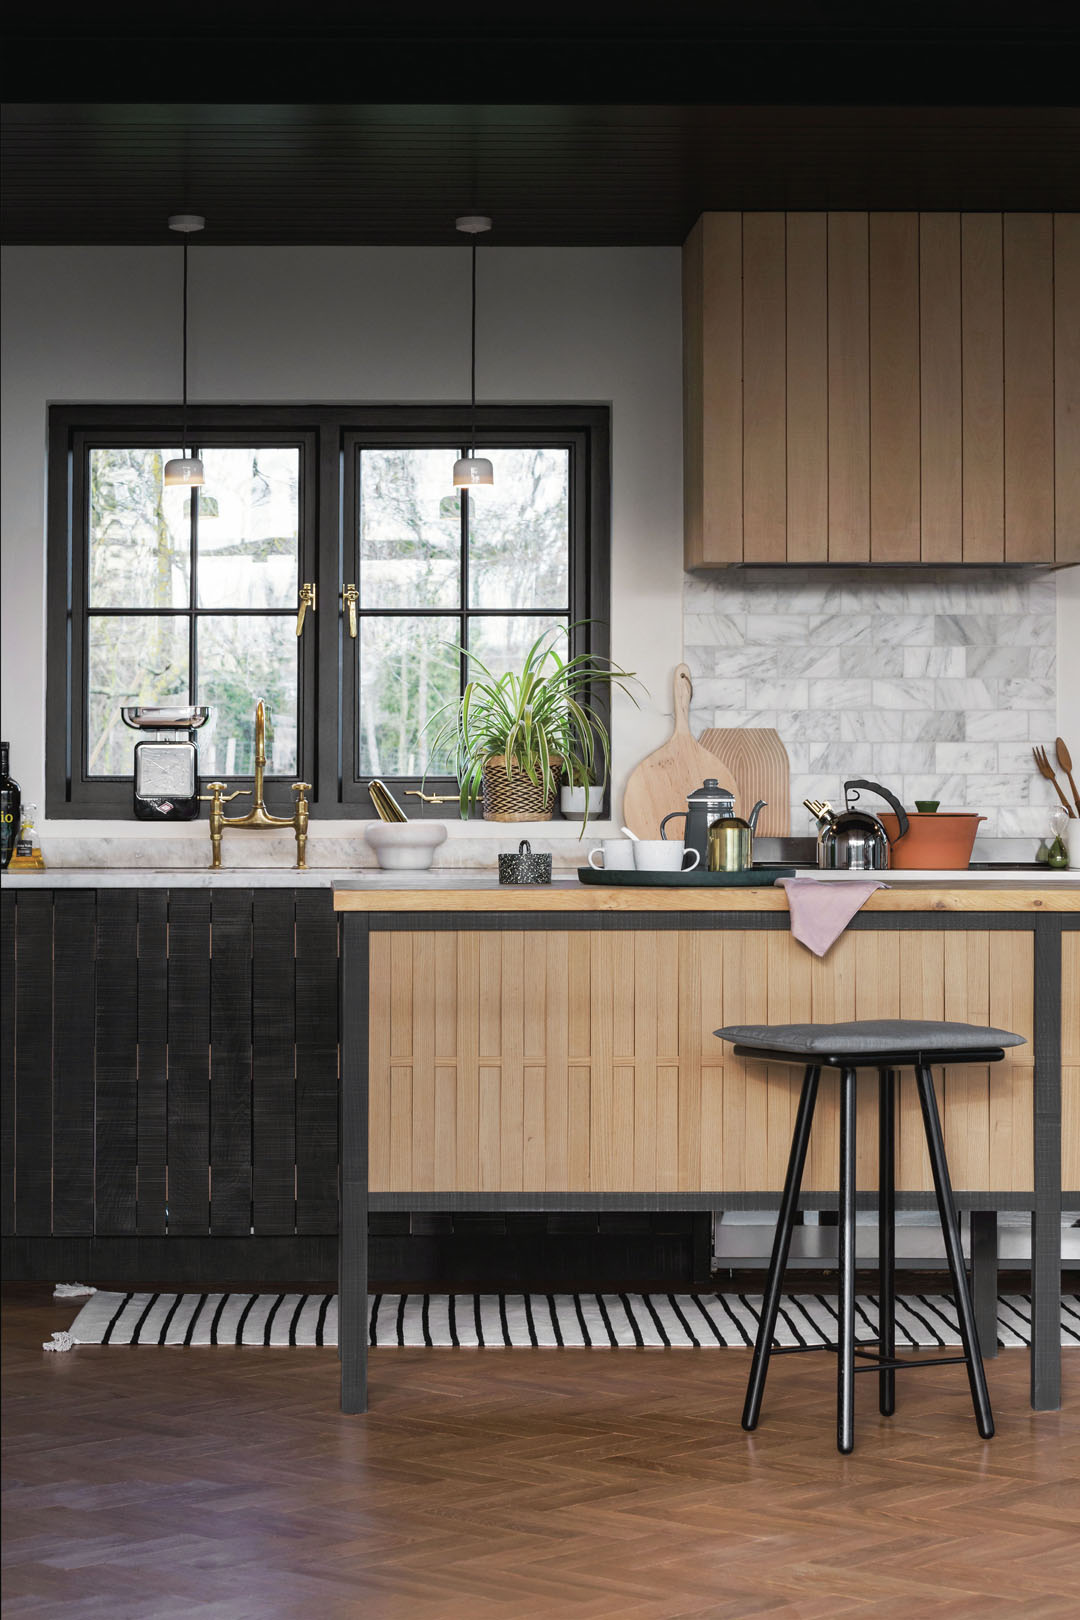 A light-bulb moment for your kitchen sustainability